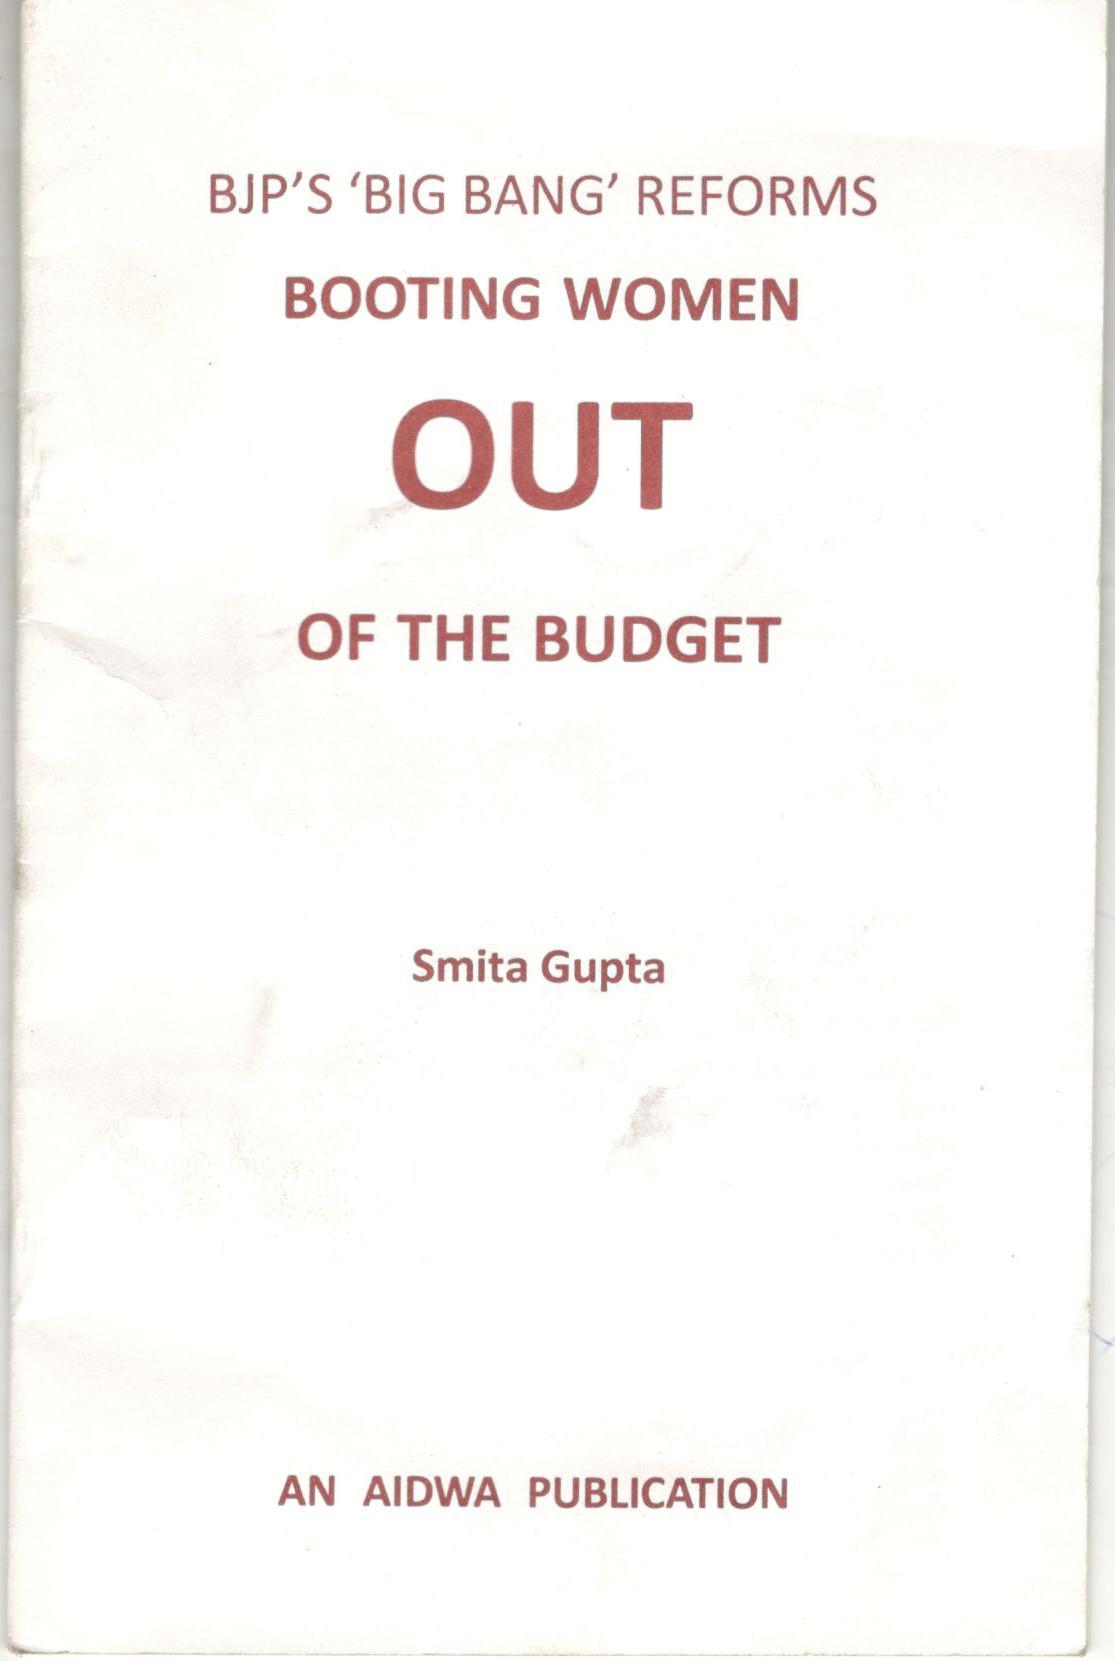 BOOTING WOMEN  OUT  OF THE BUDGET